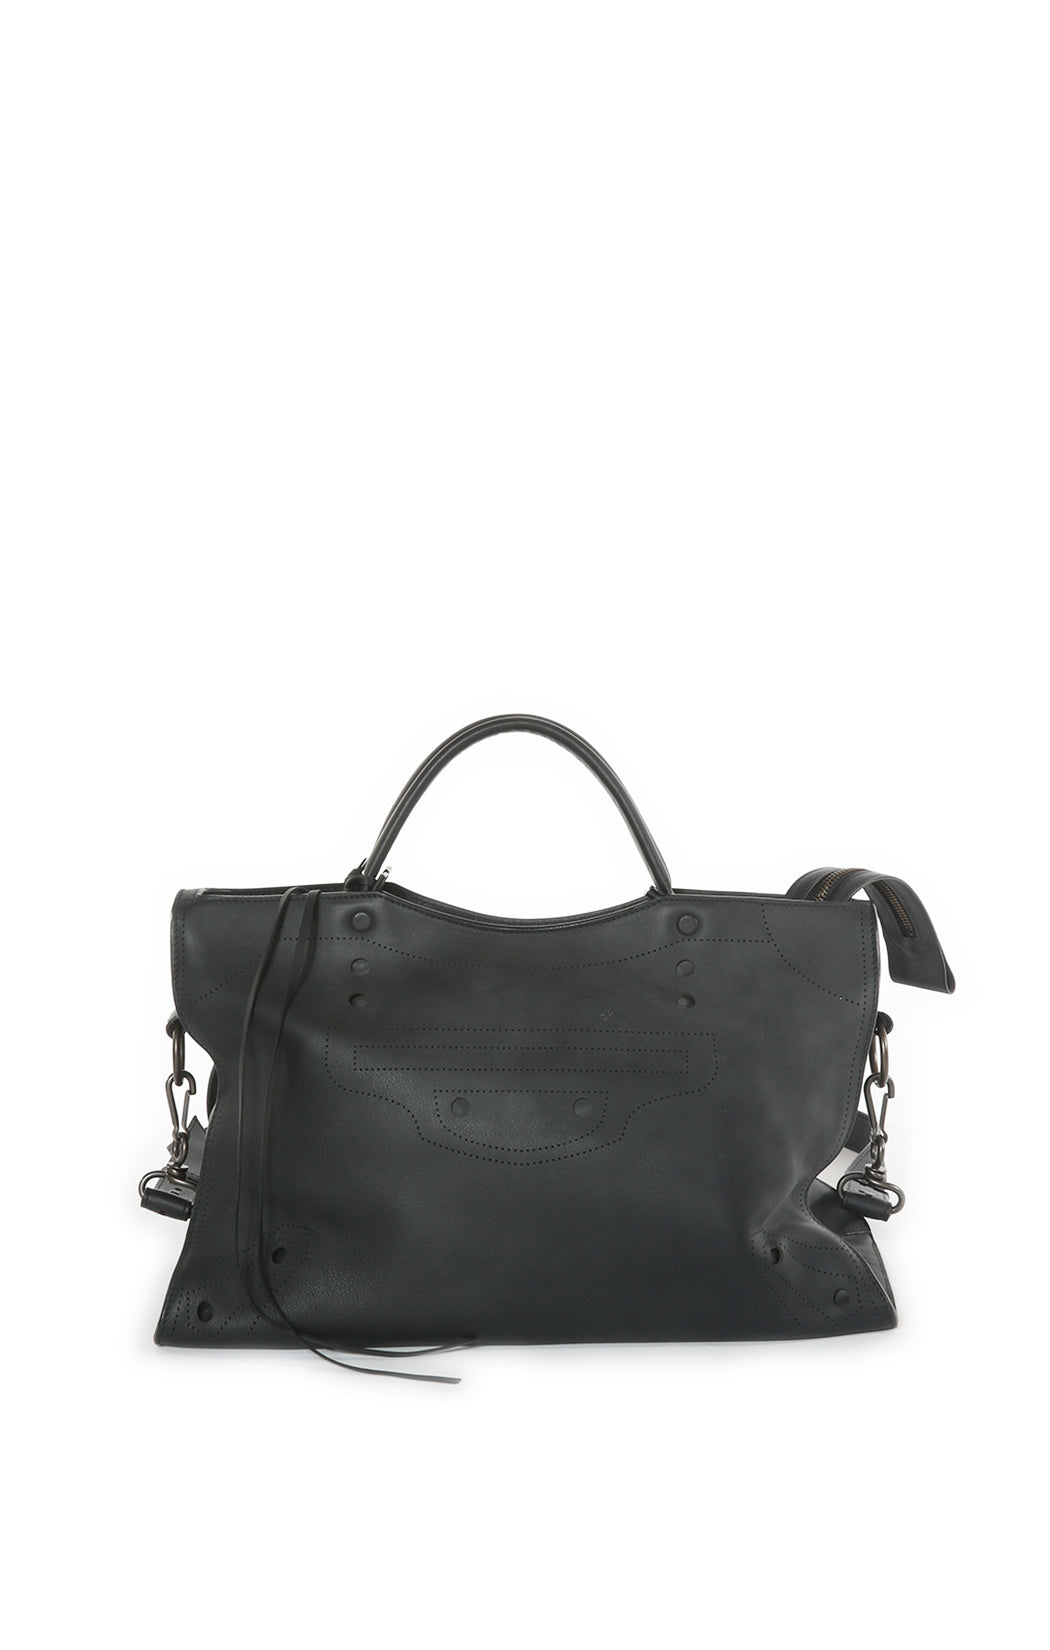 Front view of BALENCIAGA Handbag Size: 15 in x 9.5 in x 5.5 in